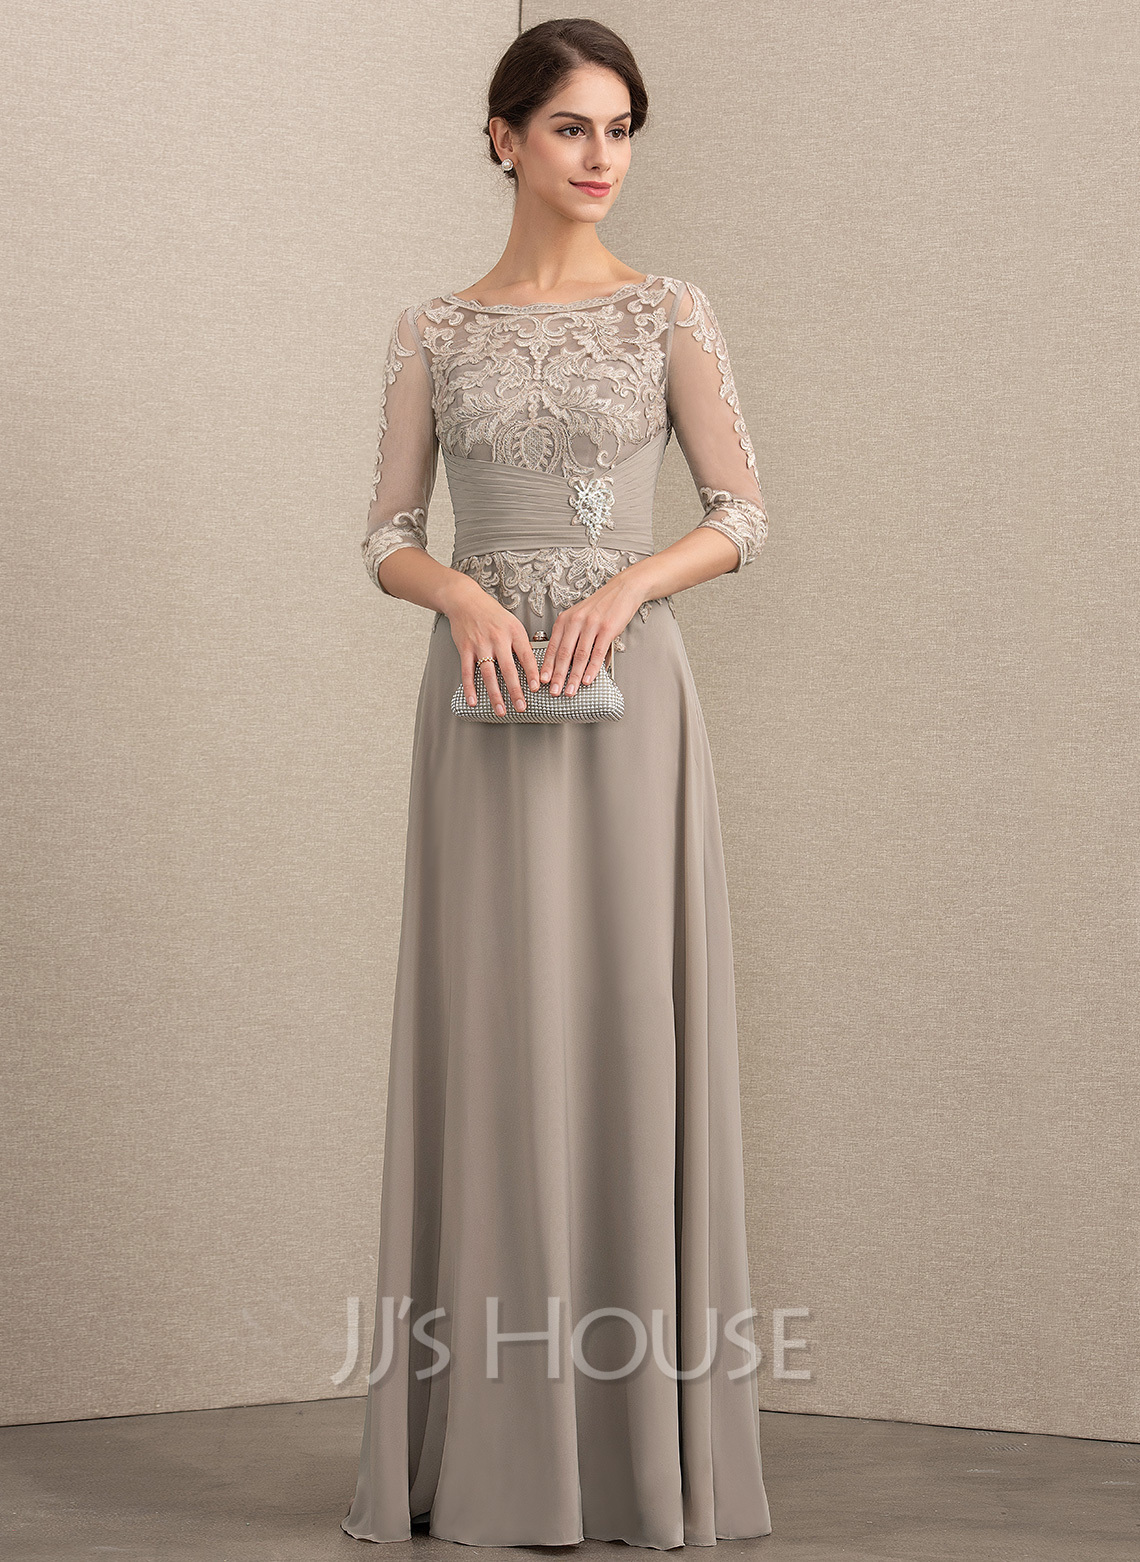 Scoop Neck Floor-Length Chiffon Lace Mother of the Bride Dress With Crystal Brooch Sequins